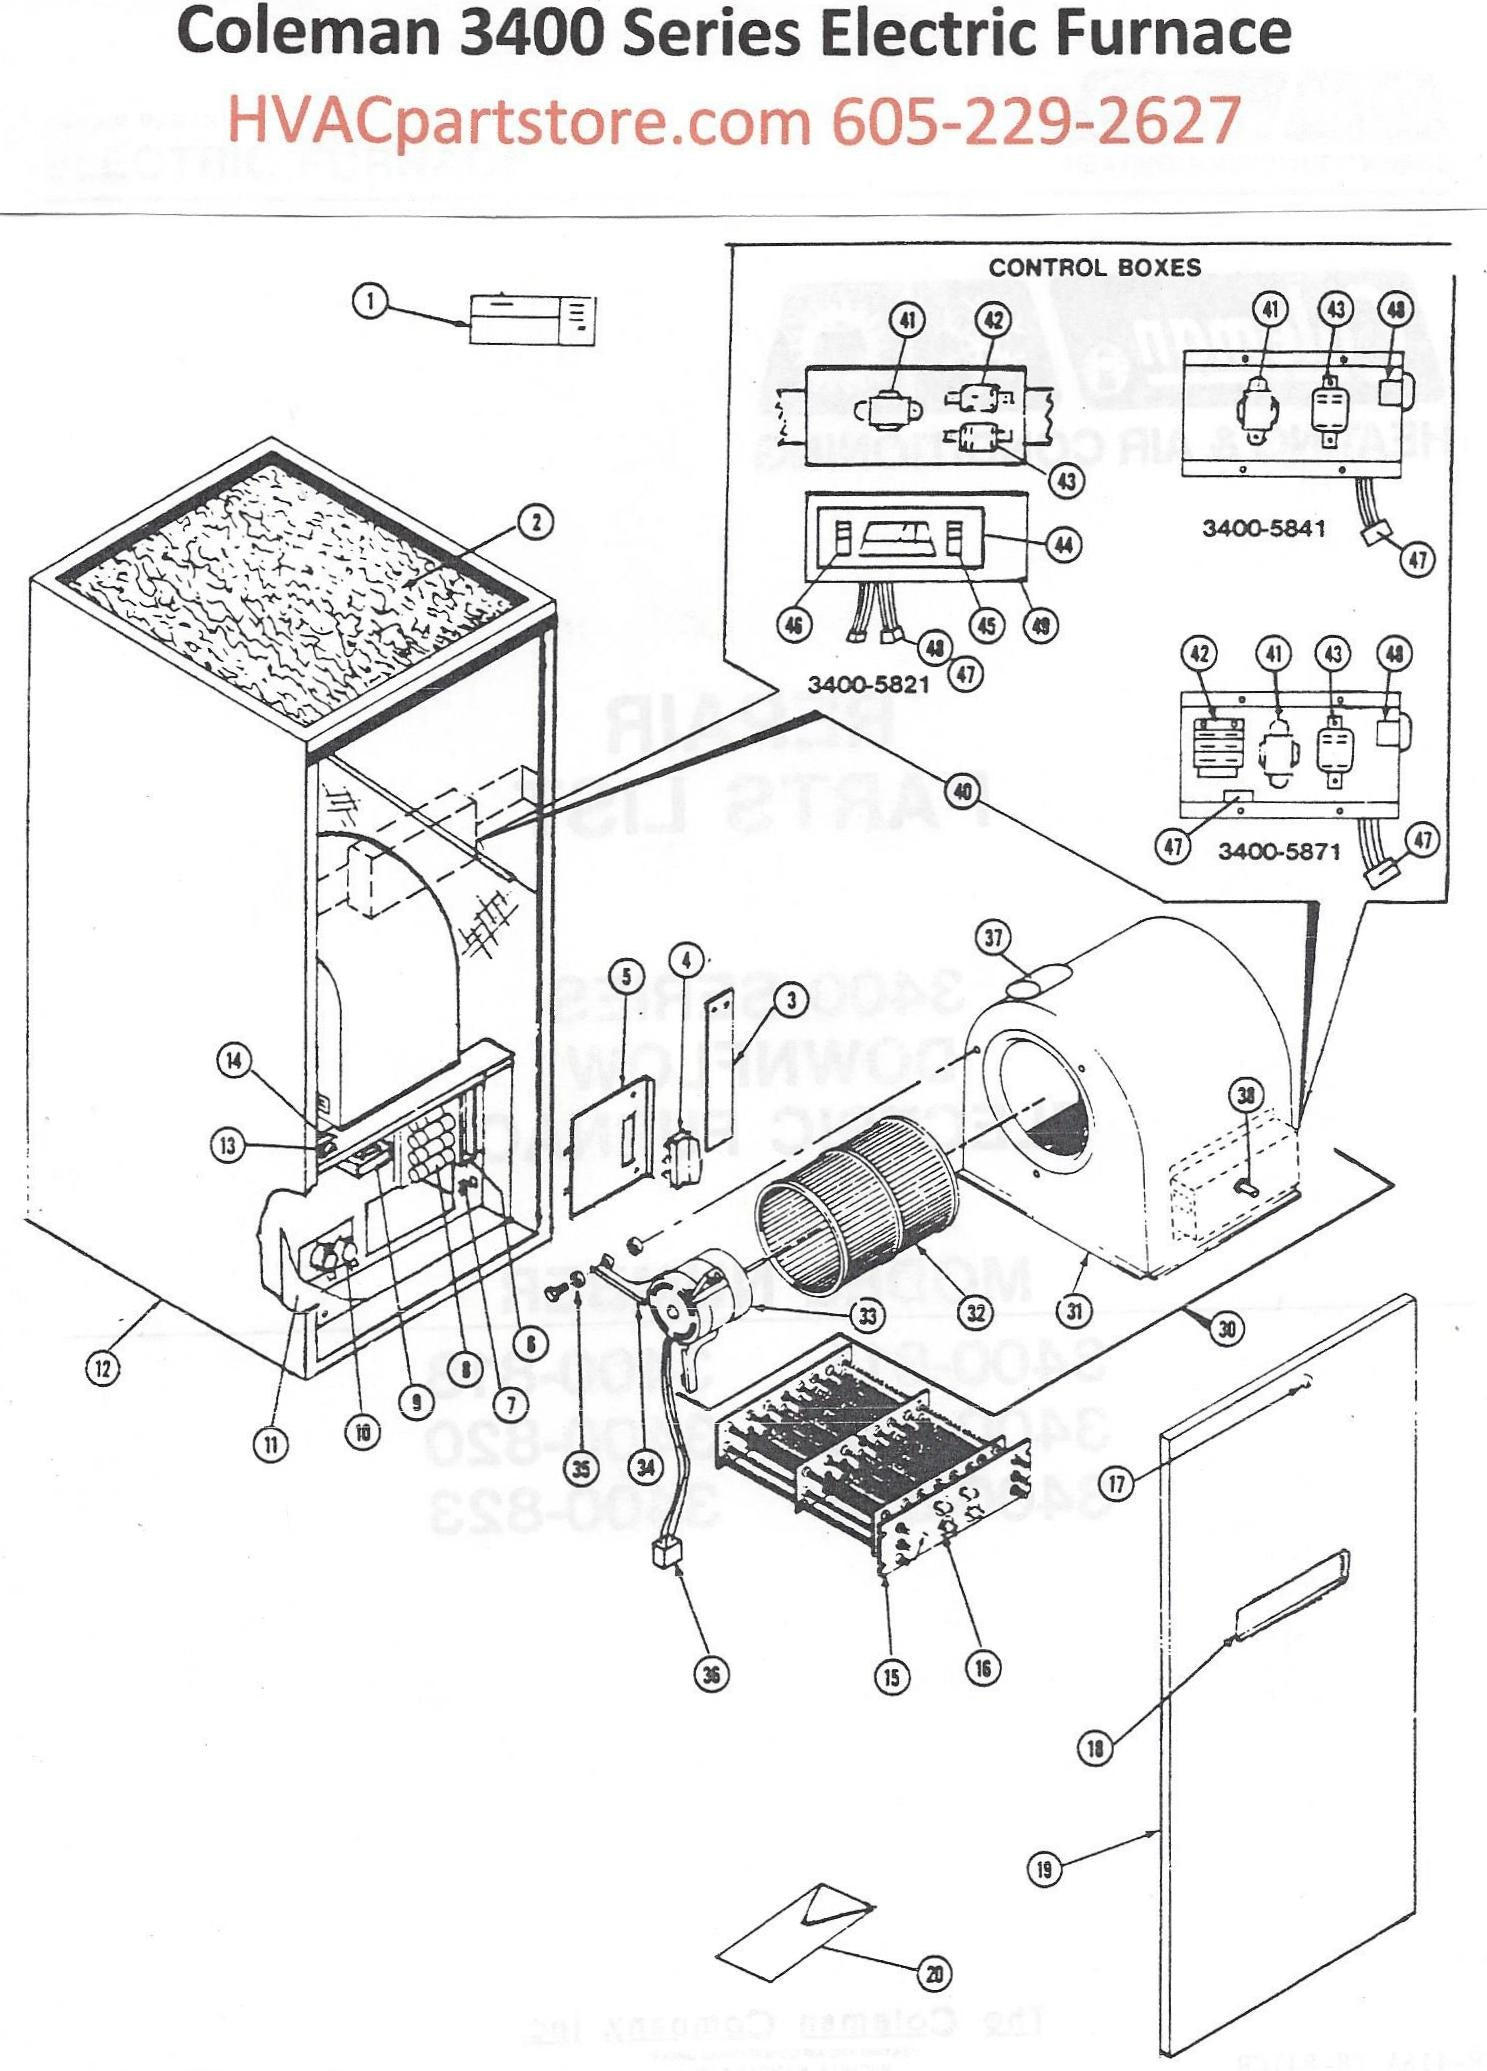 3400 818 coleman electric furnace parts hvacpartstore click here to view an installation manual which includes wiring diagrams